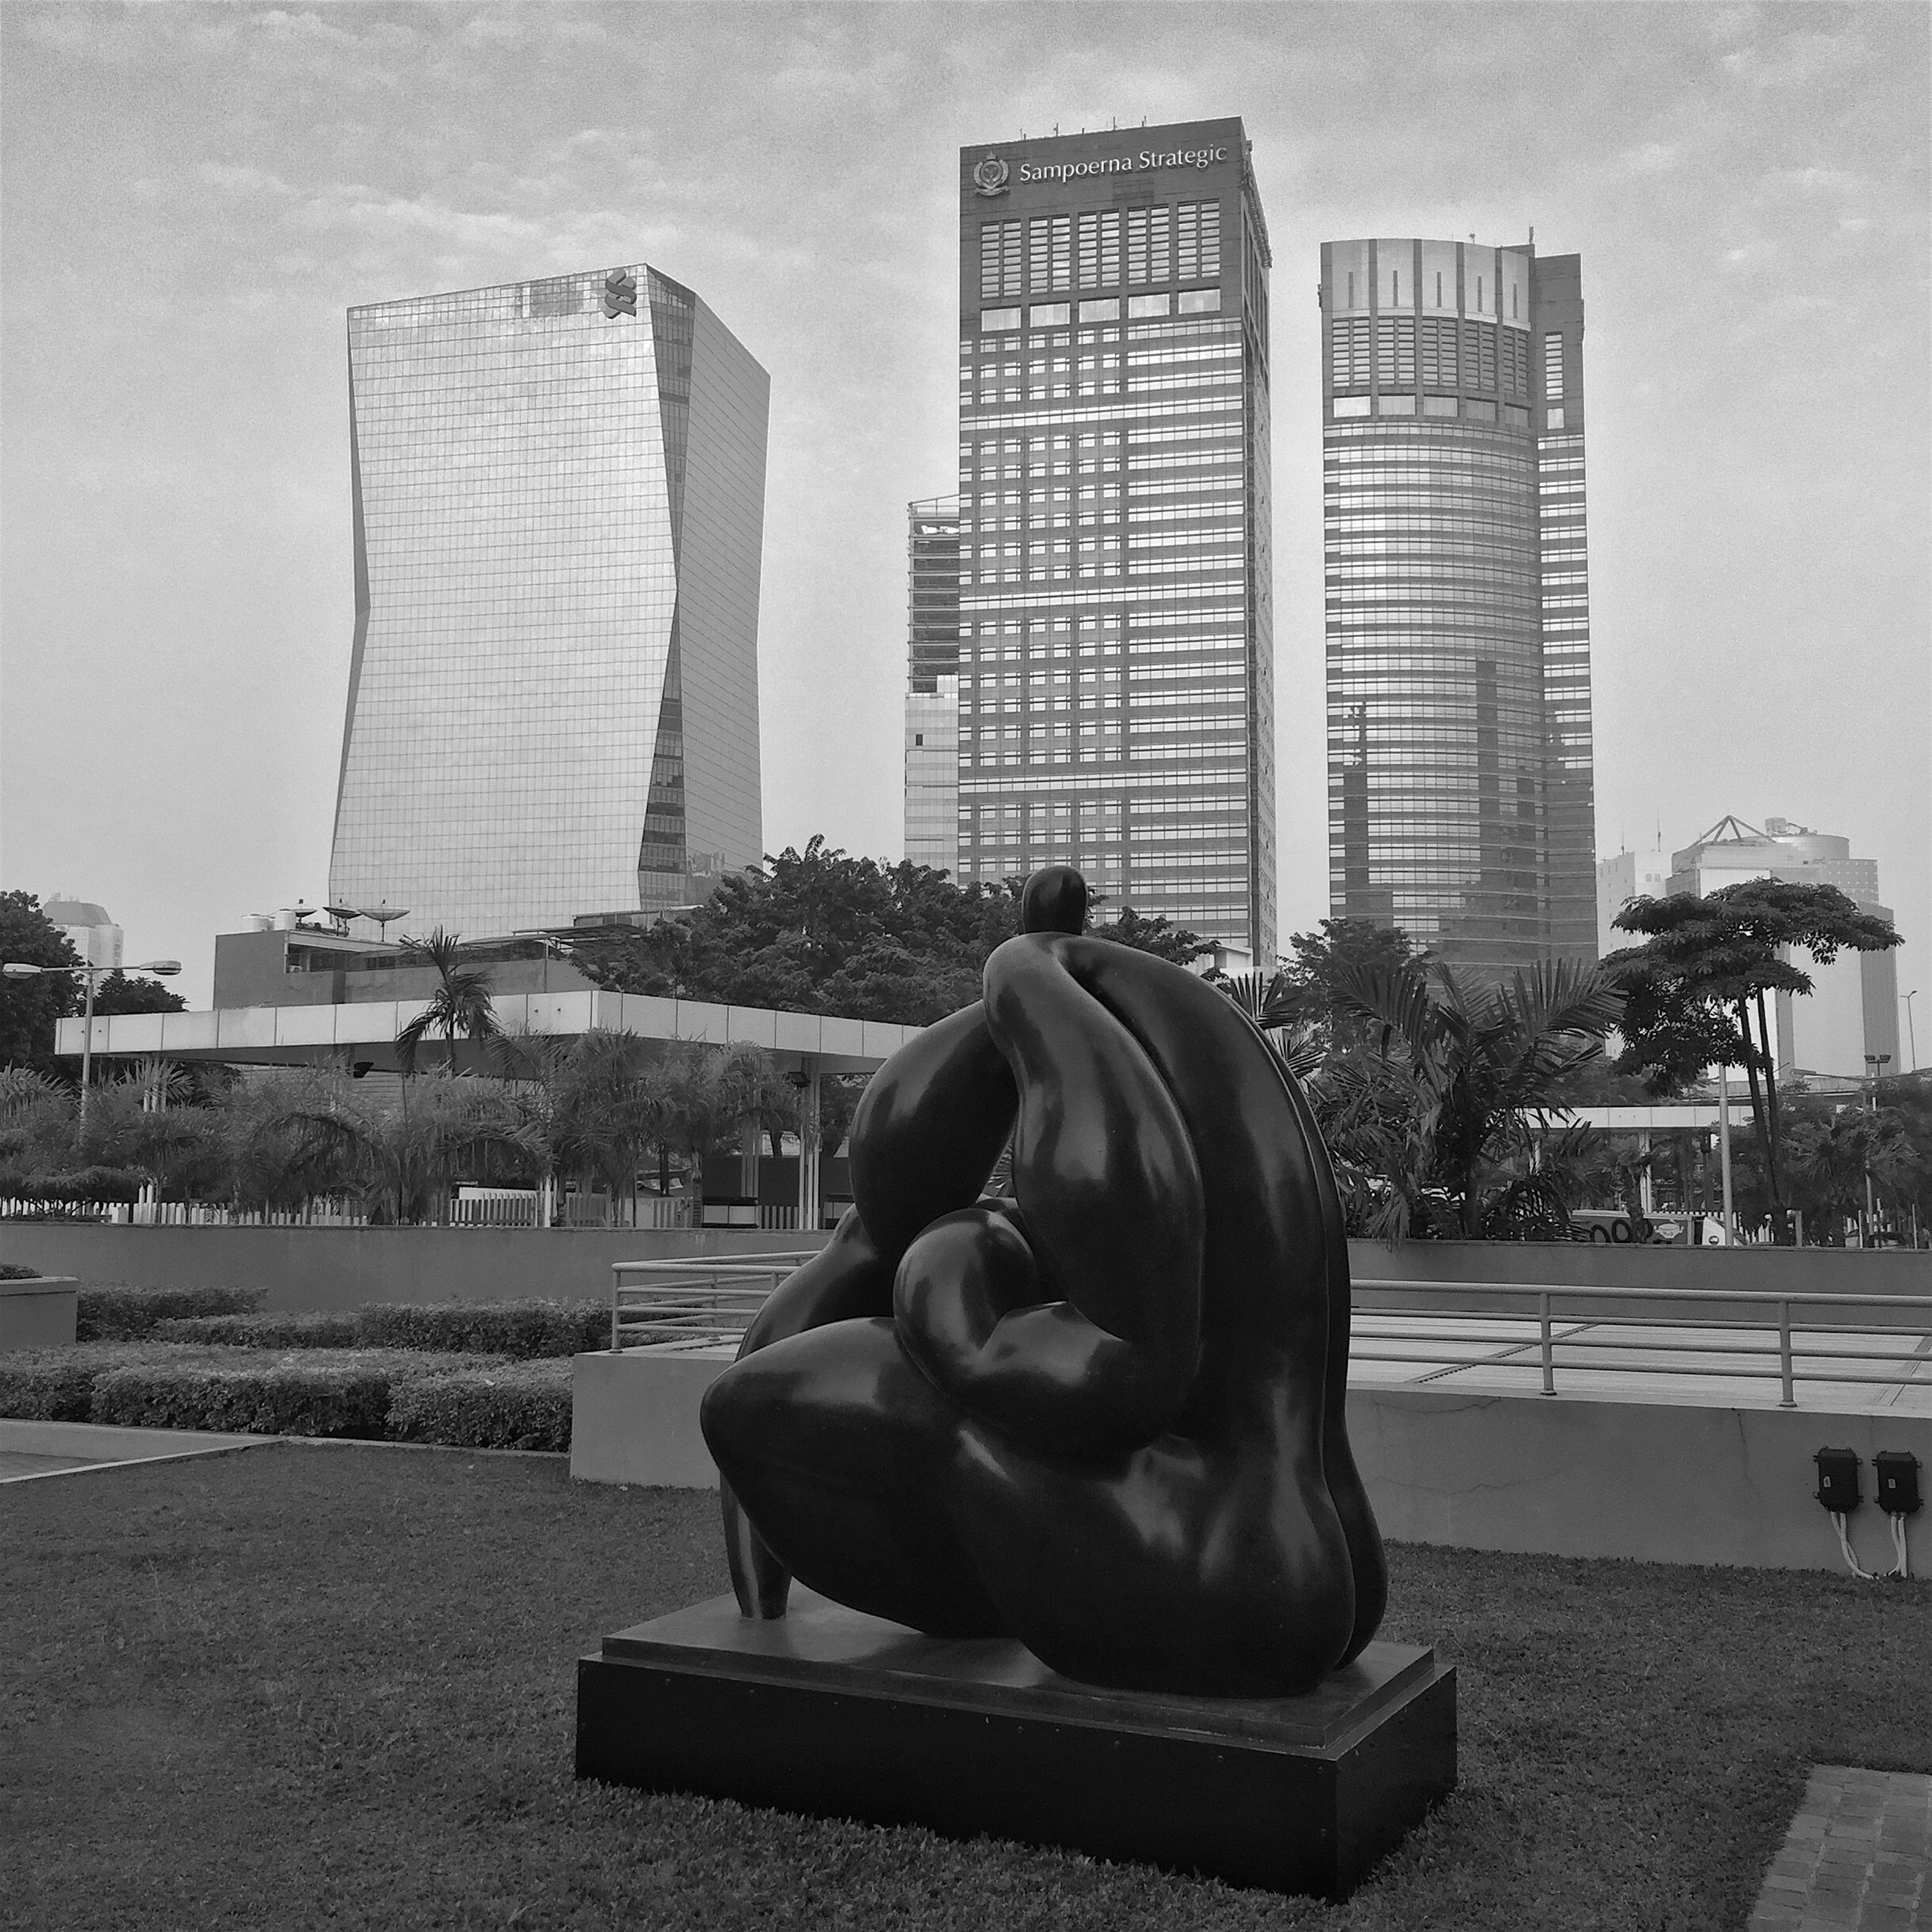 building exterior, architecture, city, built structure, skyscraper, rear view, sitting, sculpture, statue, men, full length, city life, day, modern, relaxation, office building, lifestyles, leisure activity